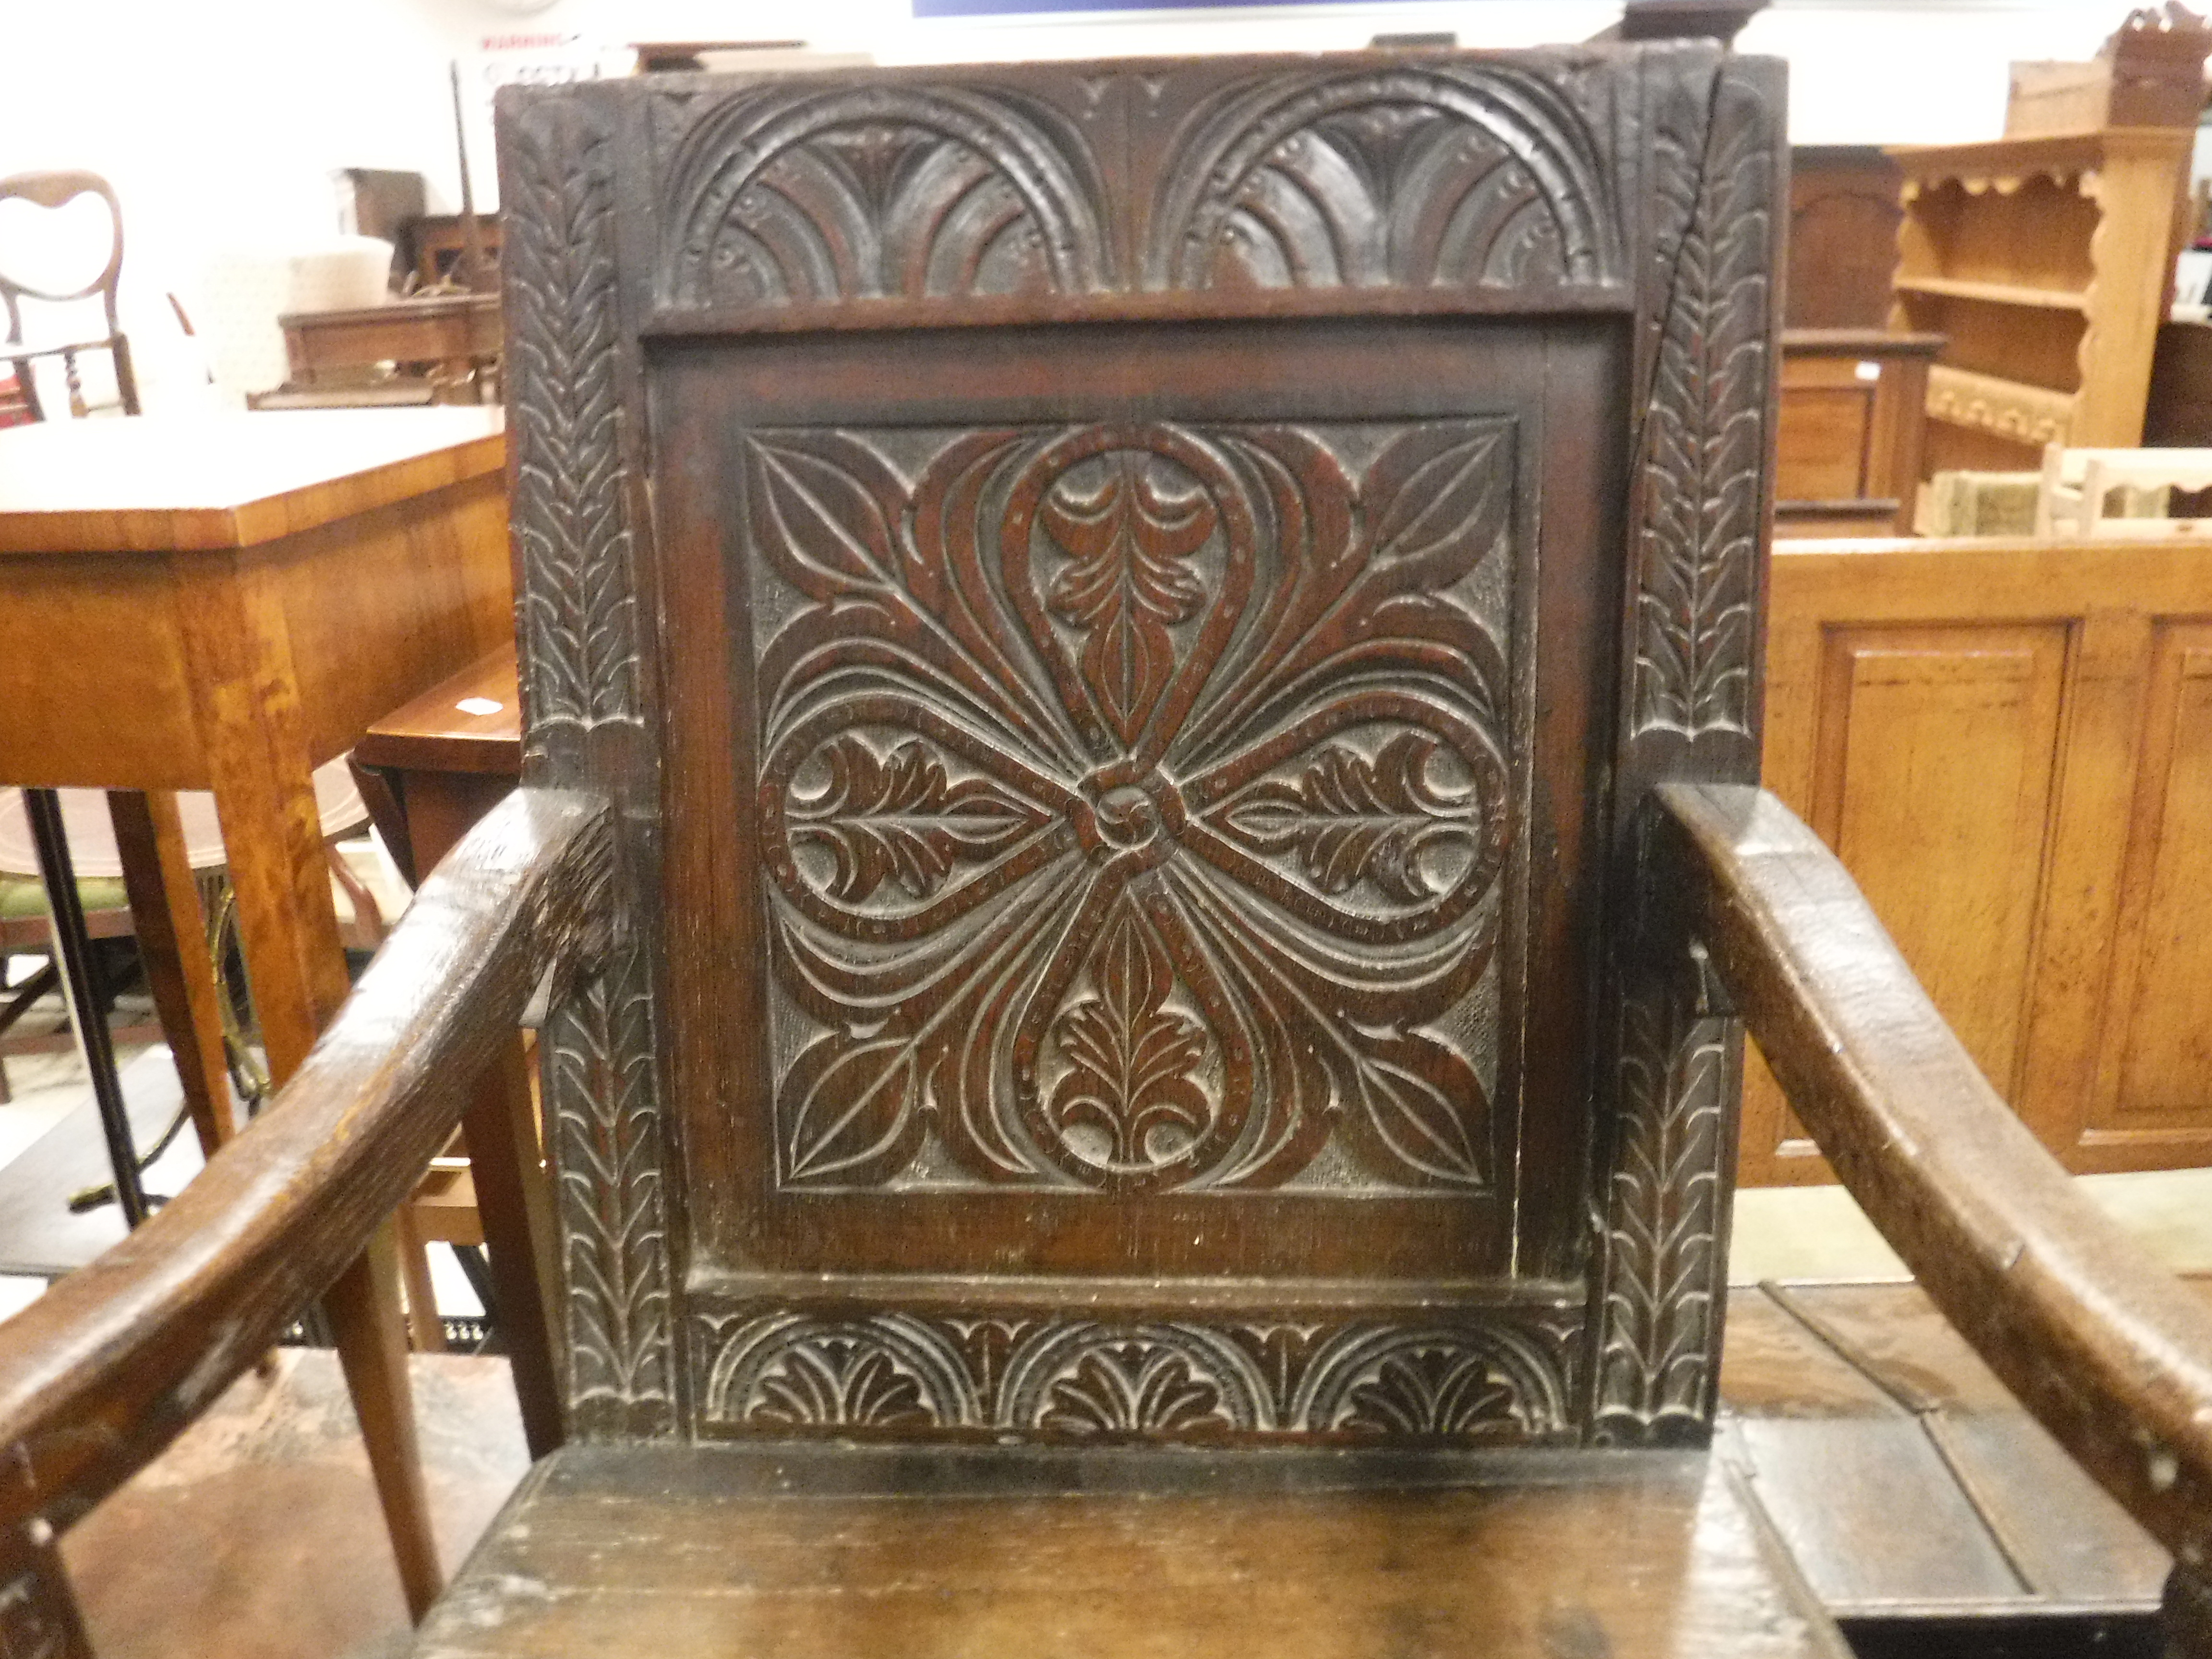 A 17th Century oak Wainscott type chair, the lunette carved top rail over a foliate medallion - Image 4 of 24